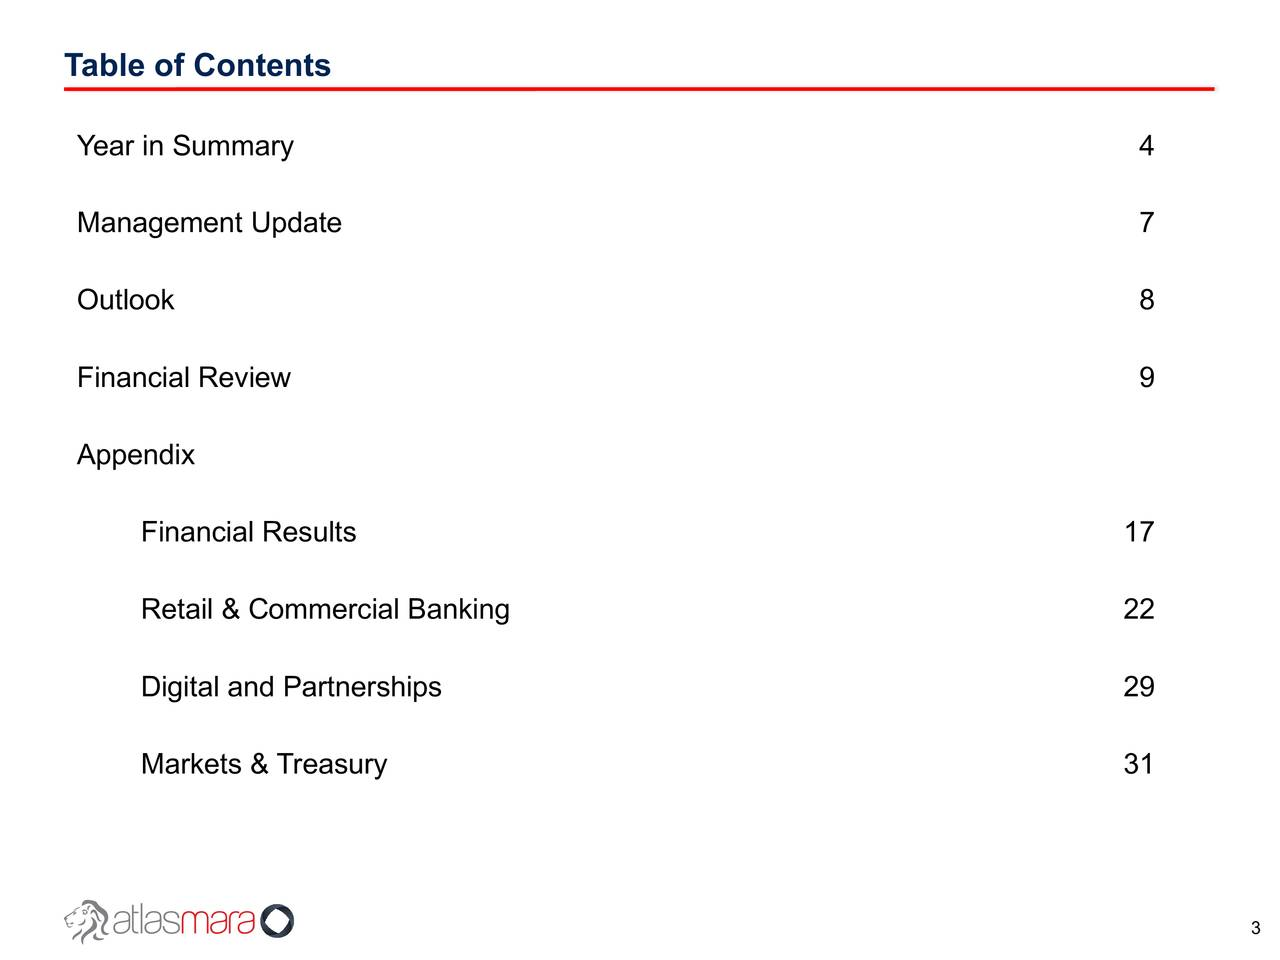 Year in Summary 4 Management Update 7 Outlook 8 Financial Review 9 Appendix Financial Results 17 Retail & Commercial Banking 22 Digital and Partnerships 29 Markets & Treasury 31 3